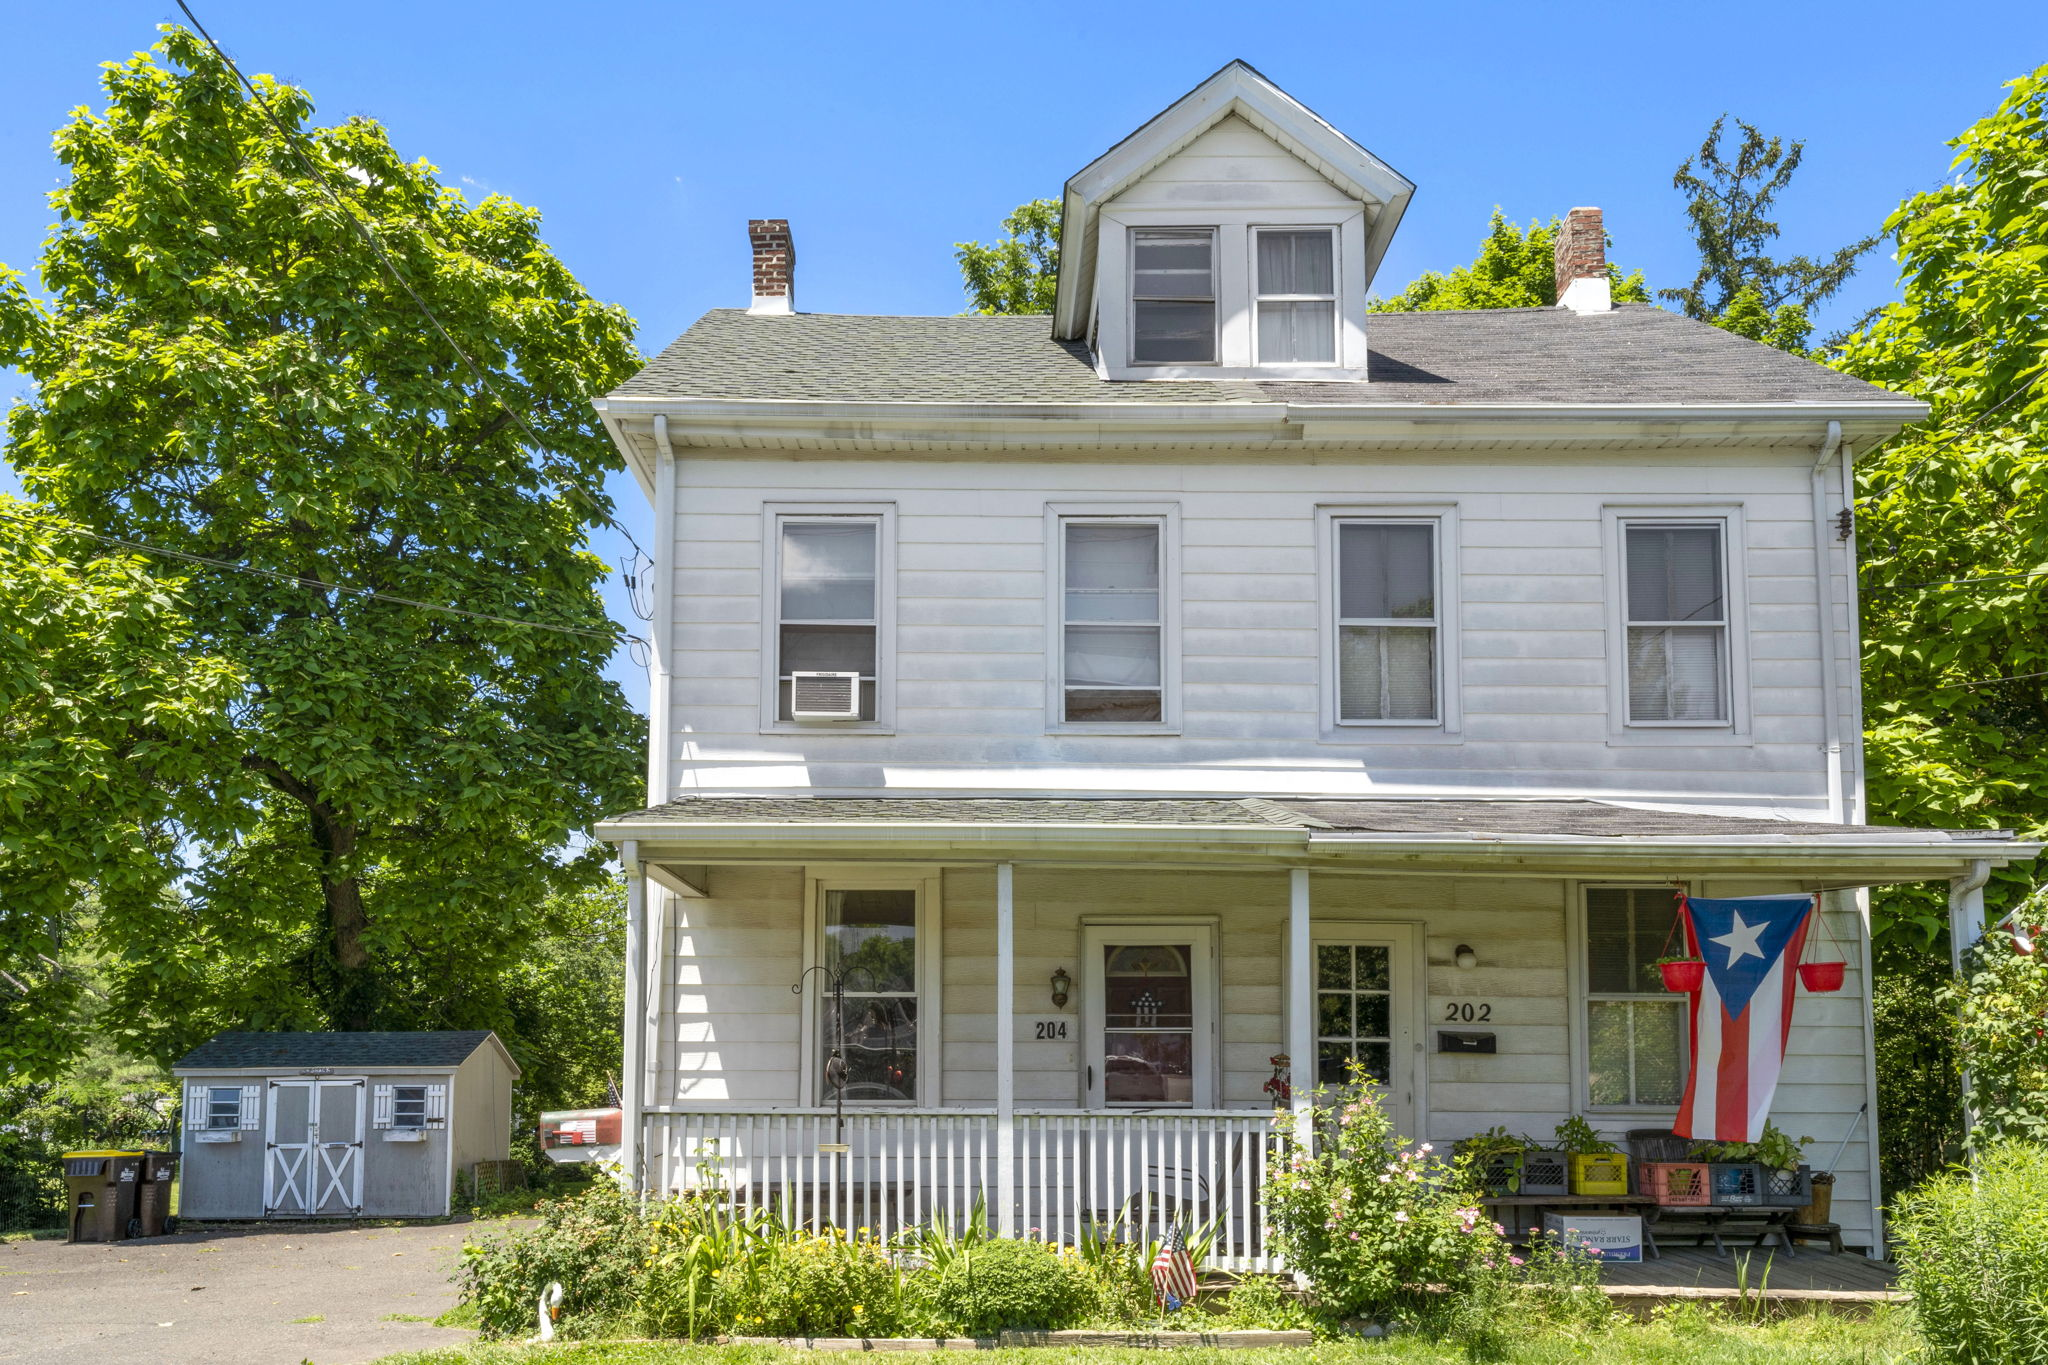 Excellent Opportunity To Purchase This 3 Bedroom North Wales Twin Home!